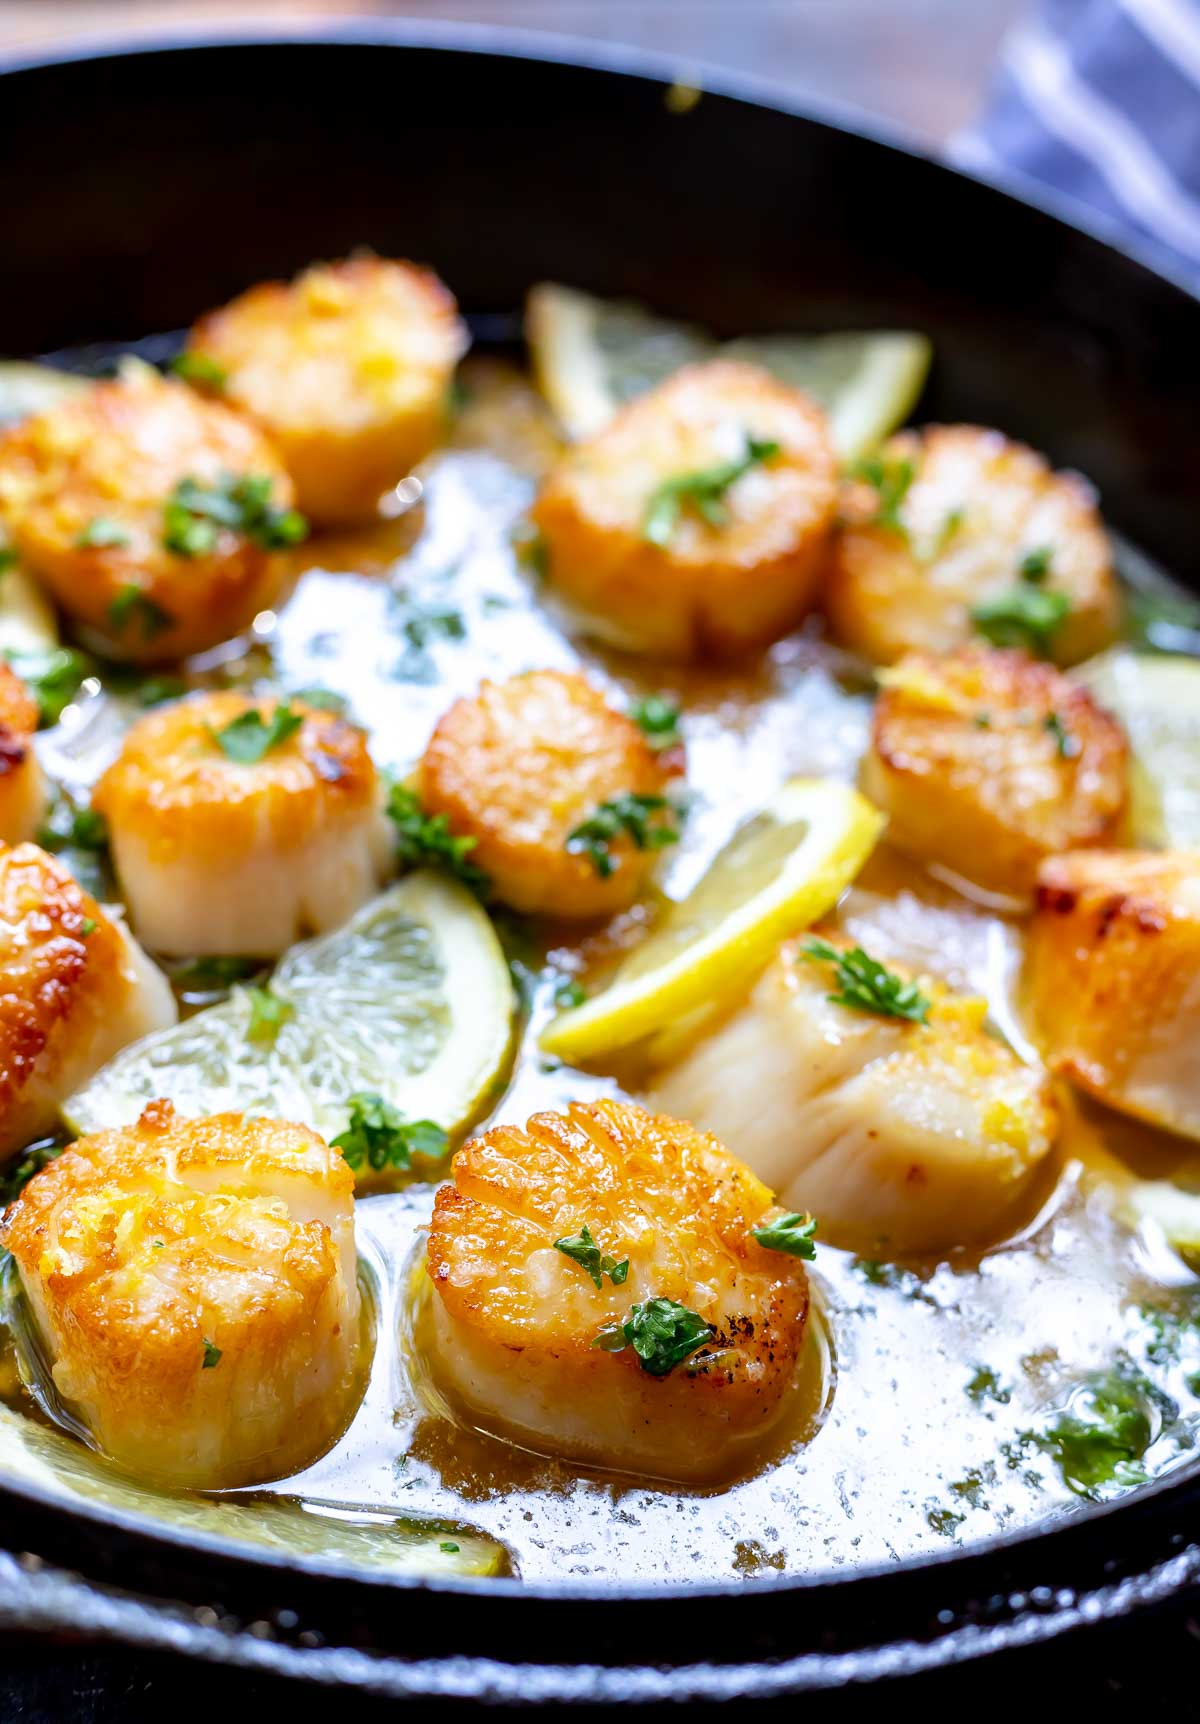 pan seared scallops in buttery sauce with lemon slices and parsley